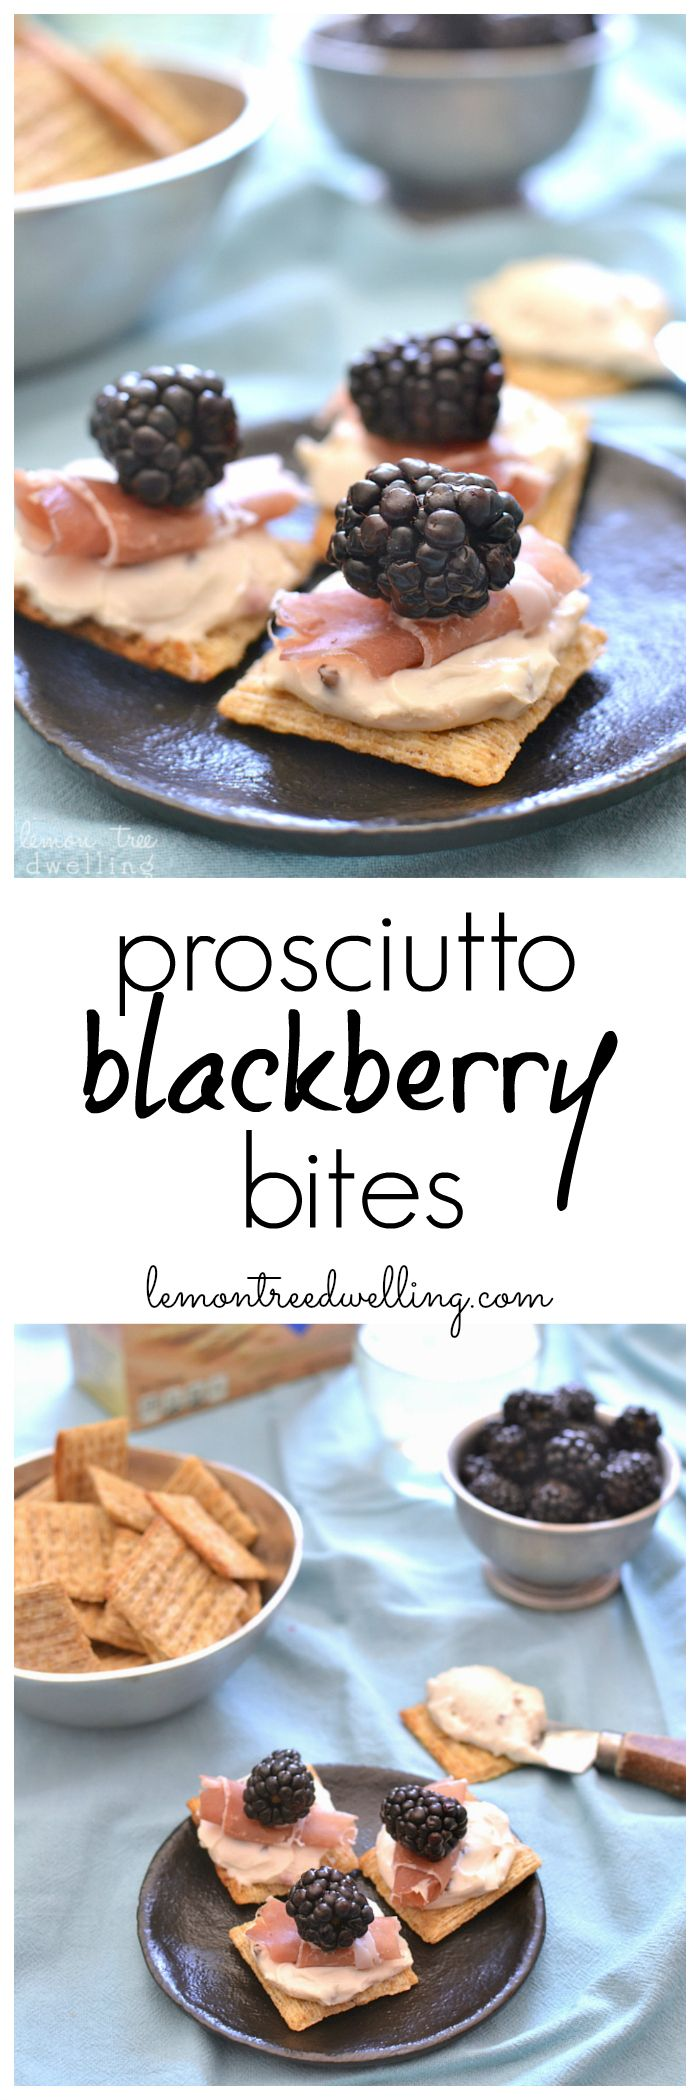 Prosciutto Blackberry Bites | Lemon Tree Dwelling